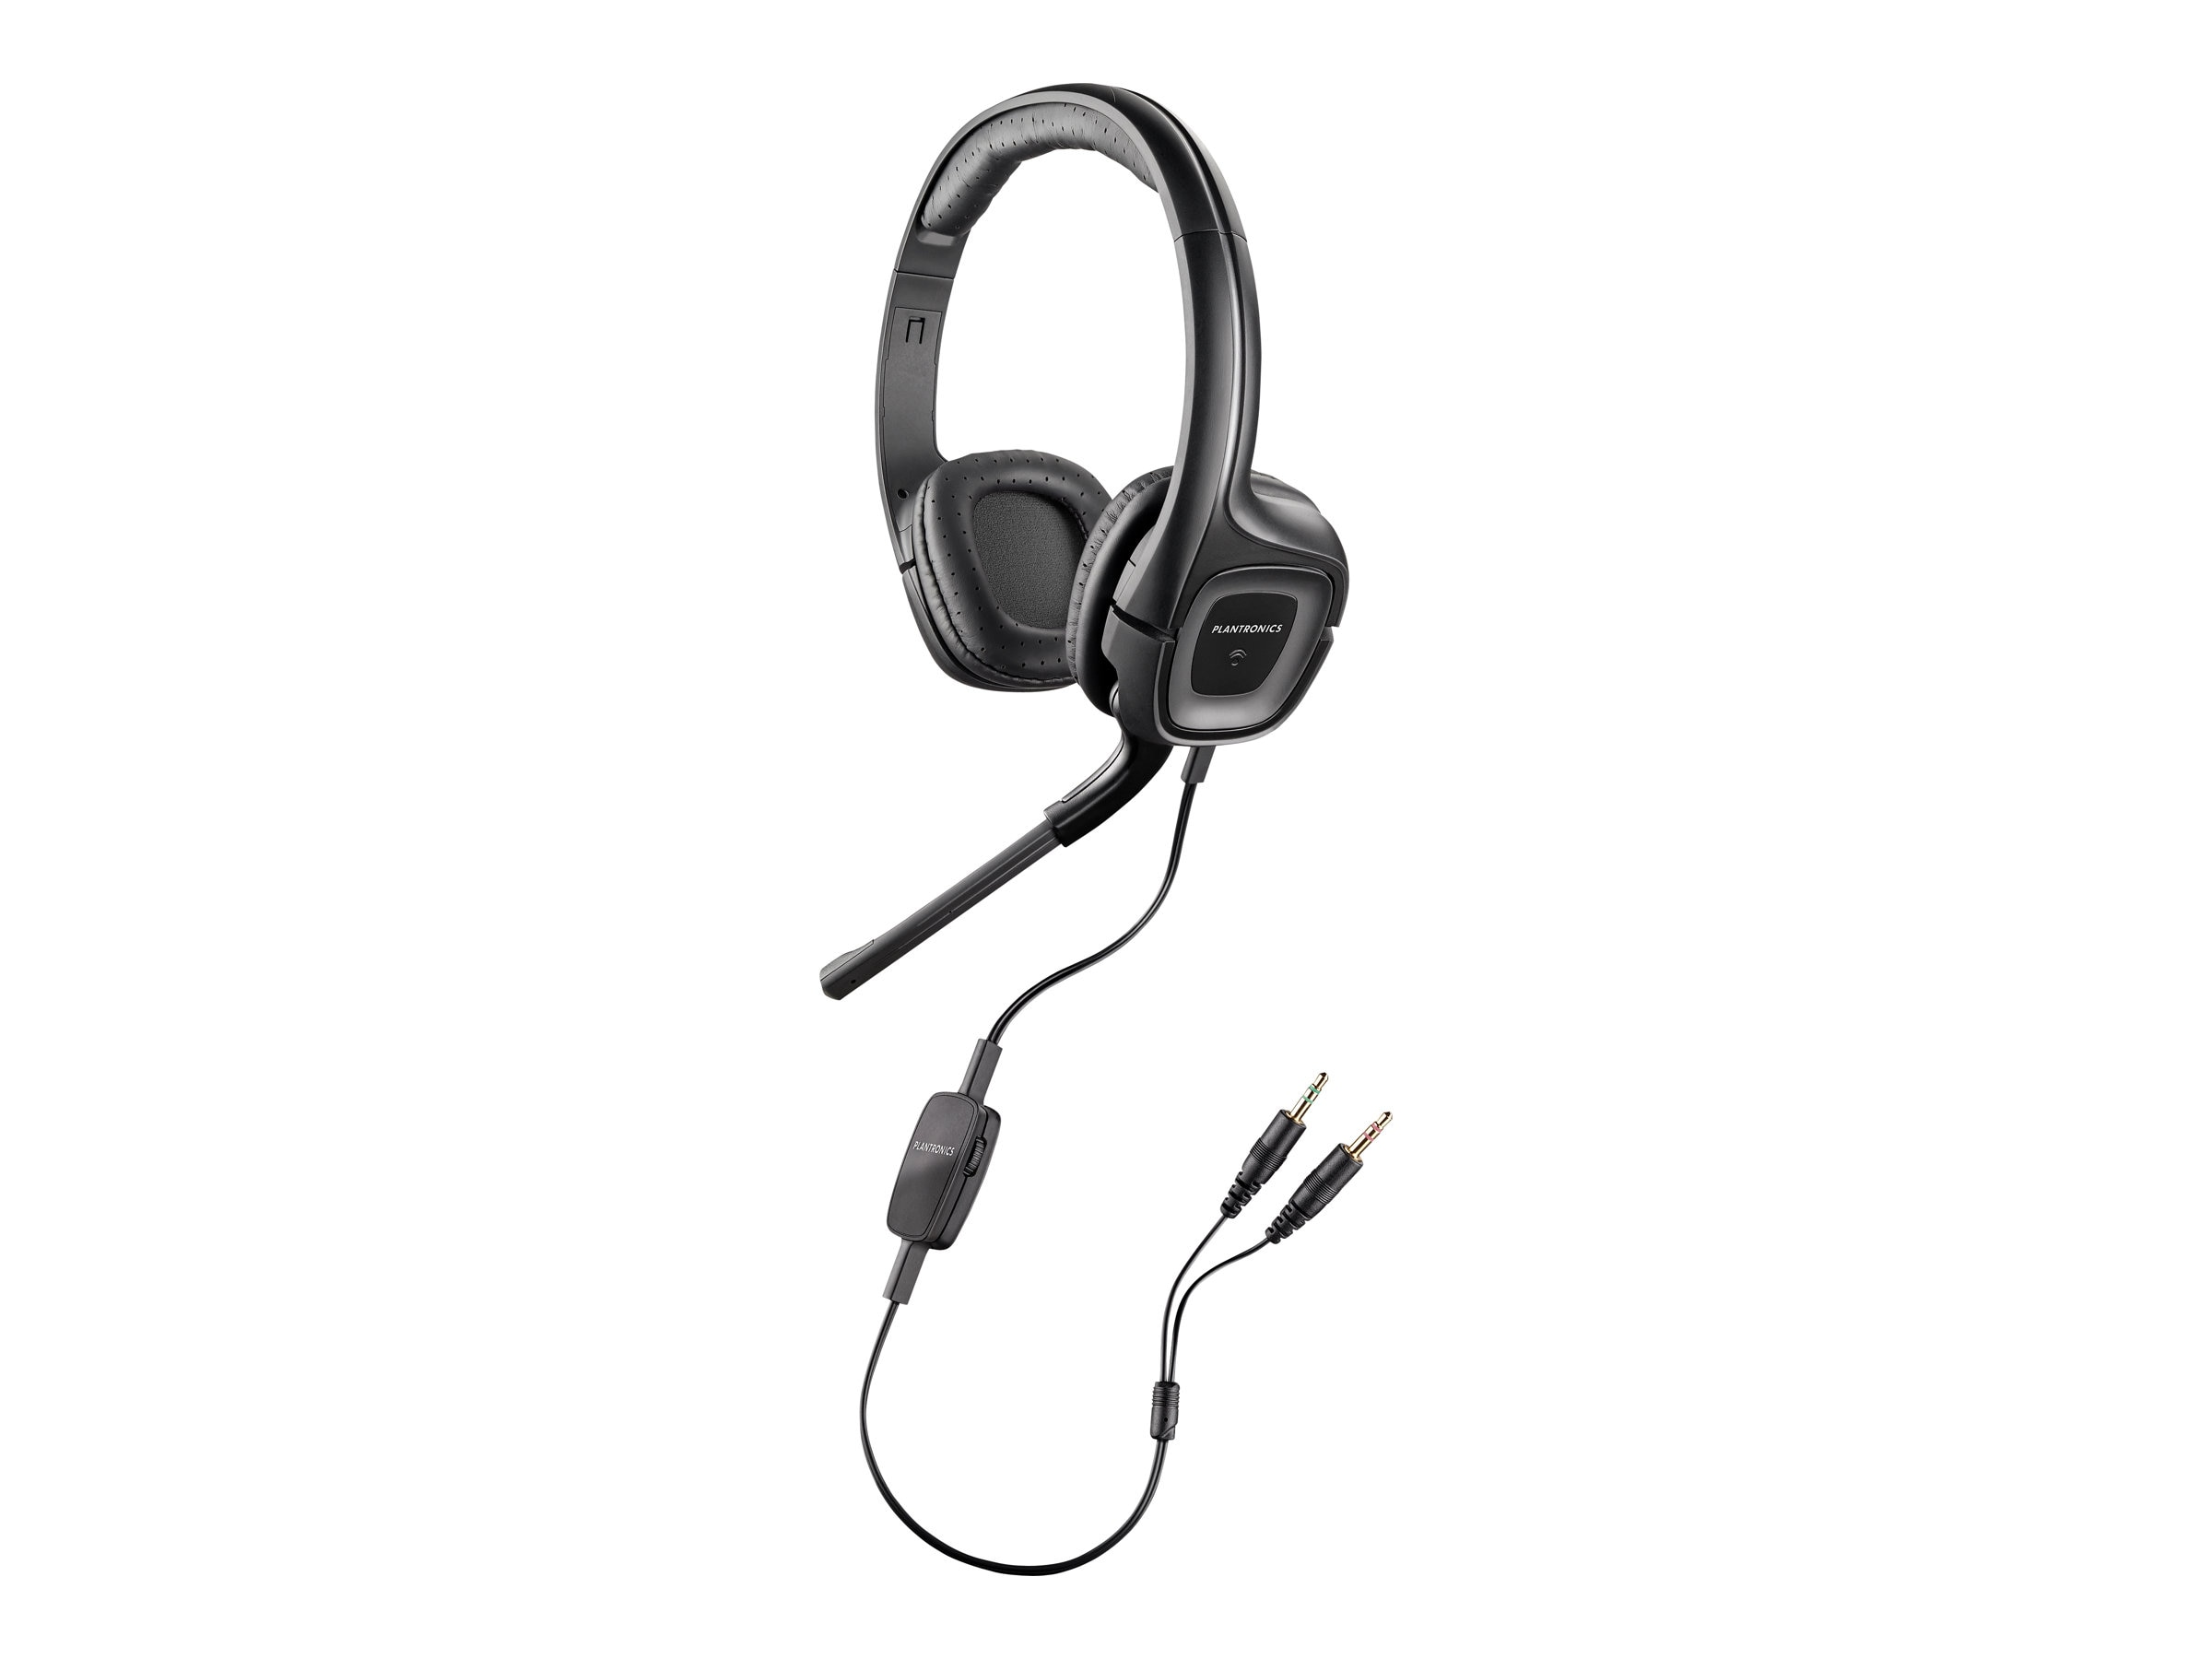 Plantronics Audio 355 with 3.5mm Adapter, 79730-21